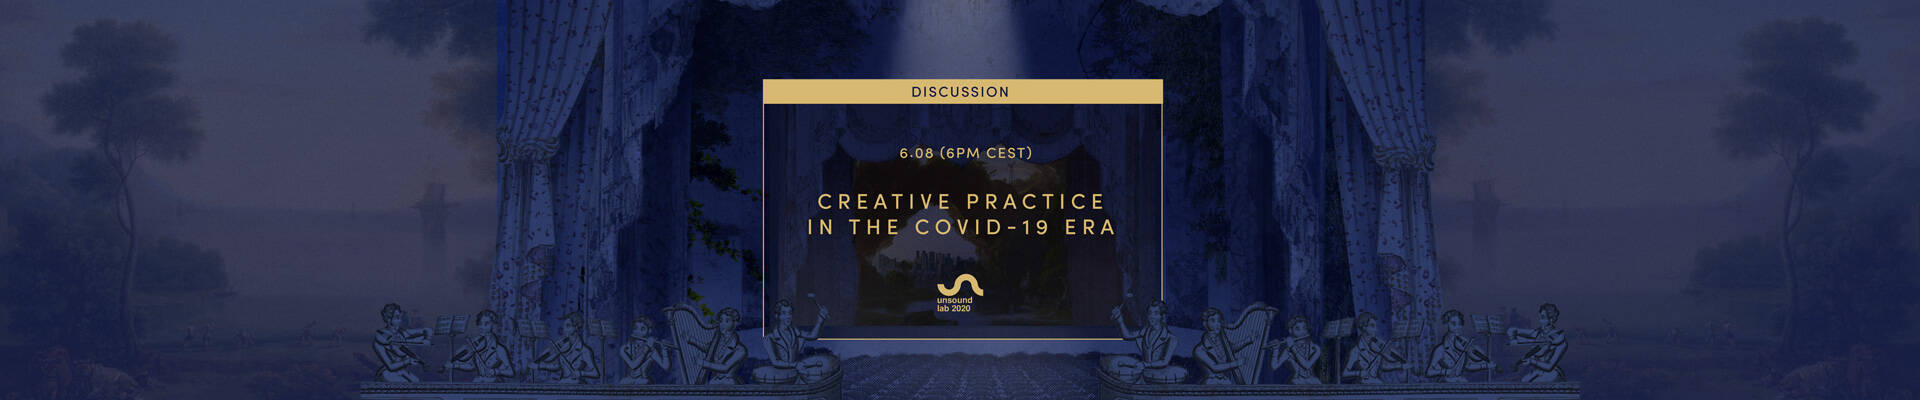 Creative Practice in the COVID-10 Era